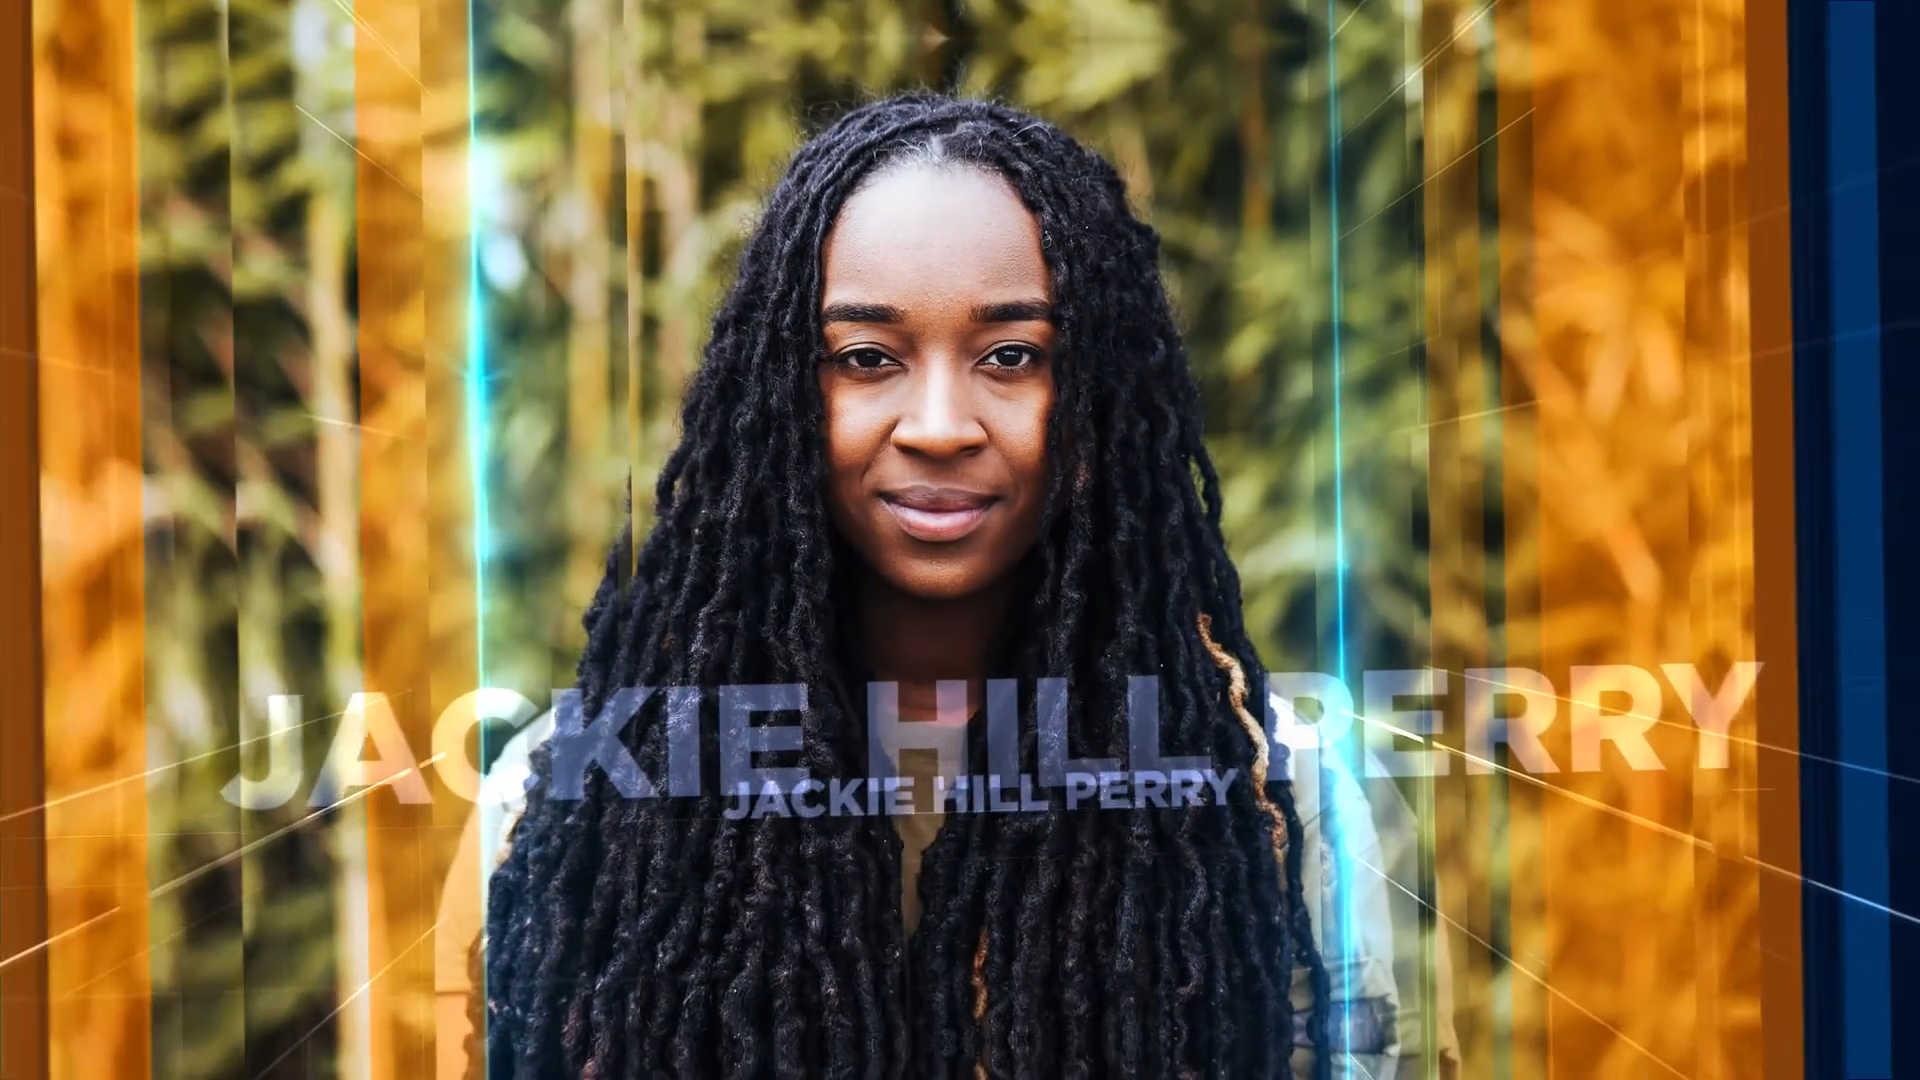 Praise - Jackie Hill Perry - September 28, 2021